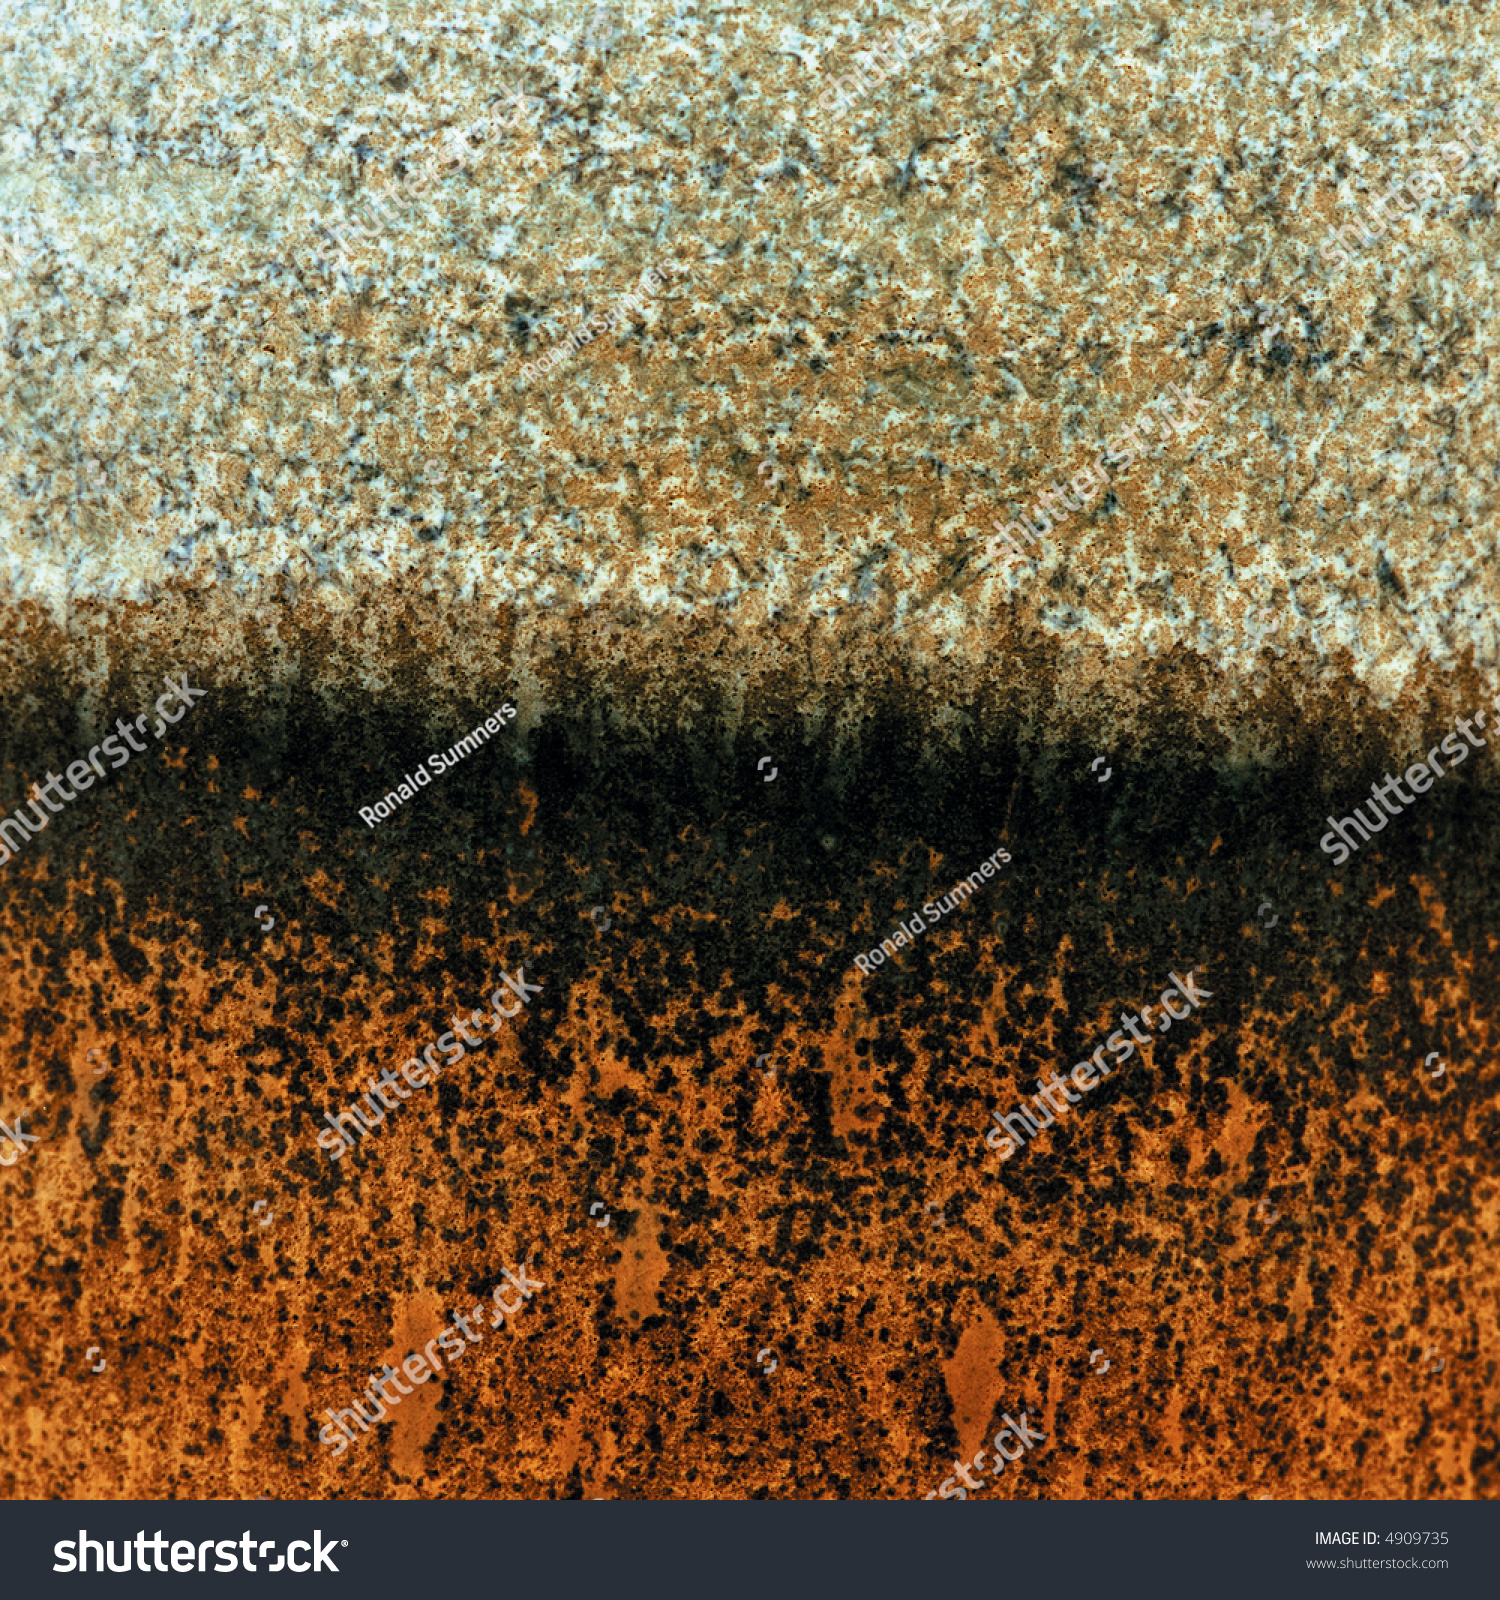 Close Up Photo Of Brown Surface: Brown Rustic Background Texture Abstract Closeup Stock